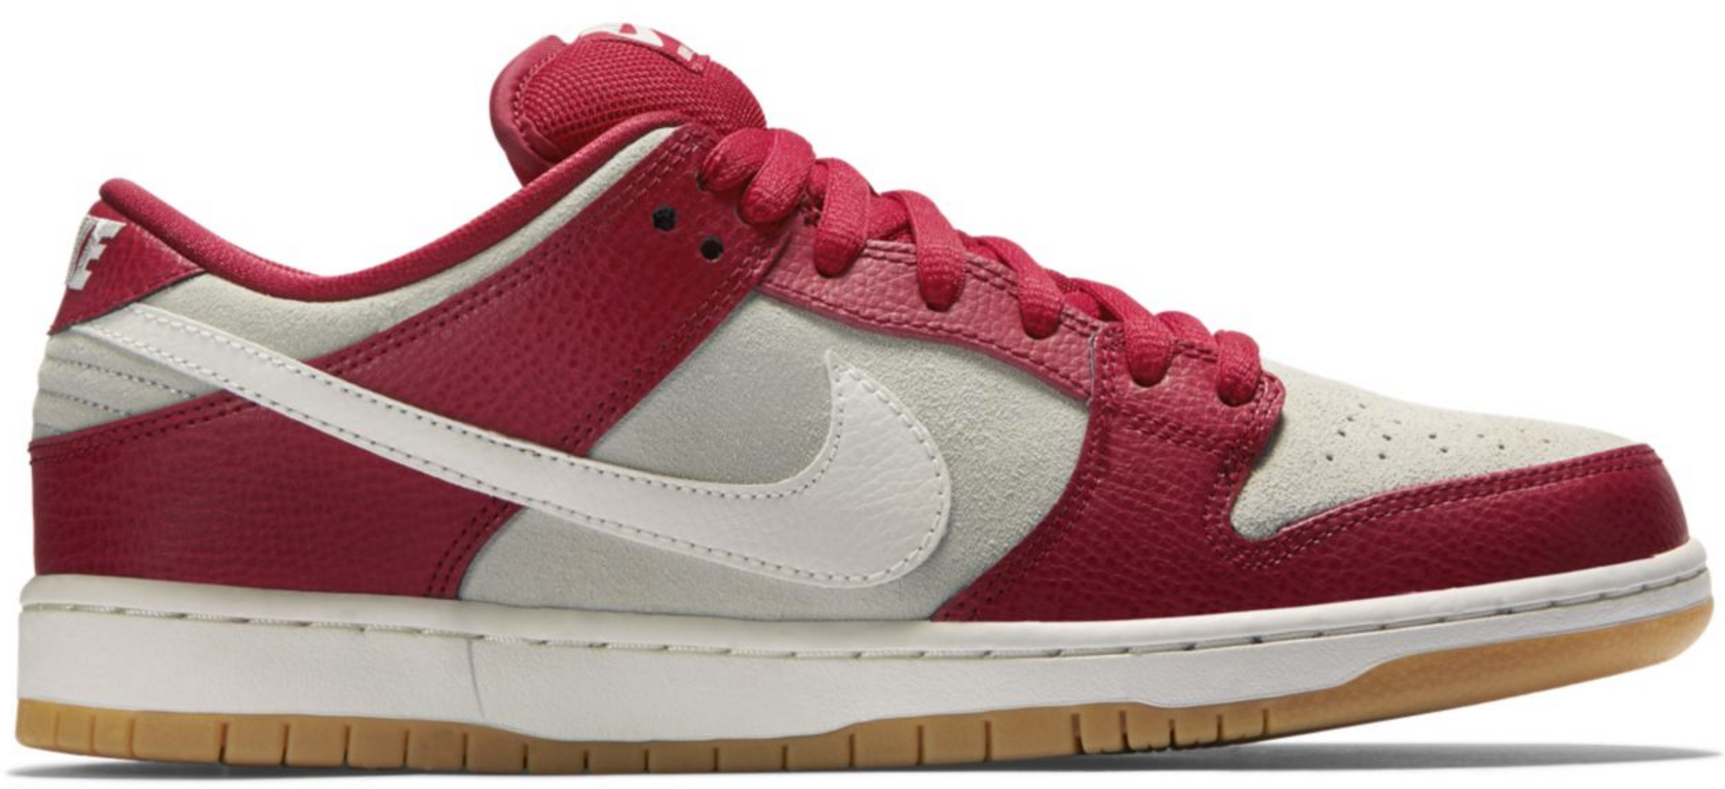 Nike Dunk SB Low Valentines Day (2015